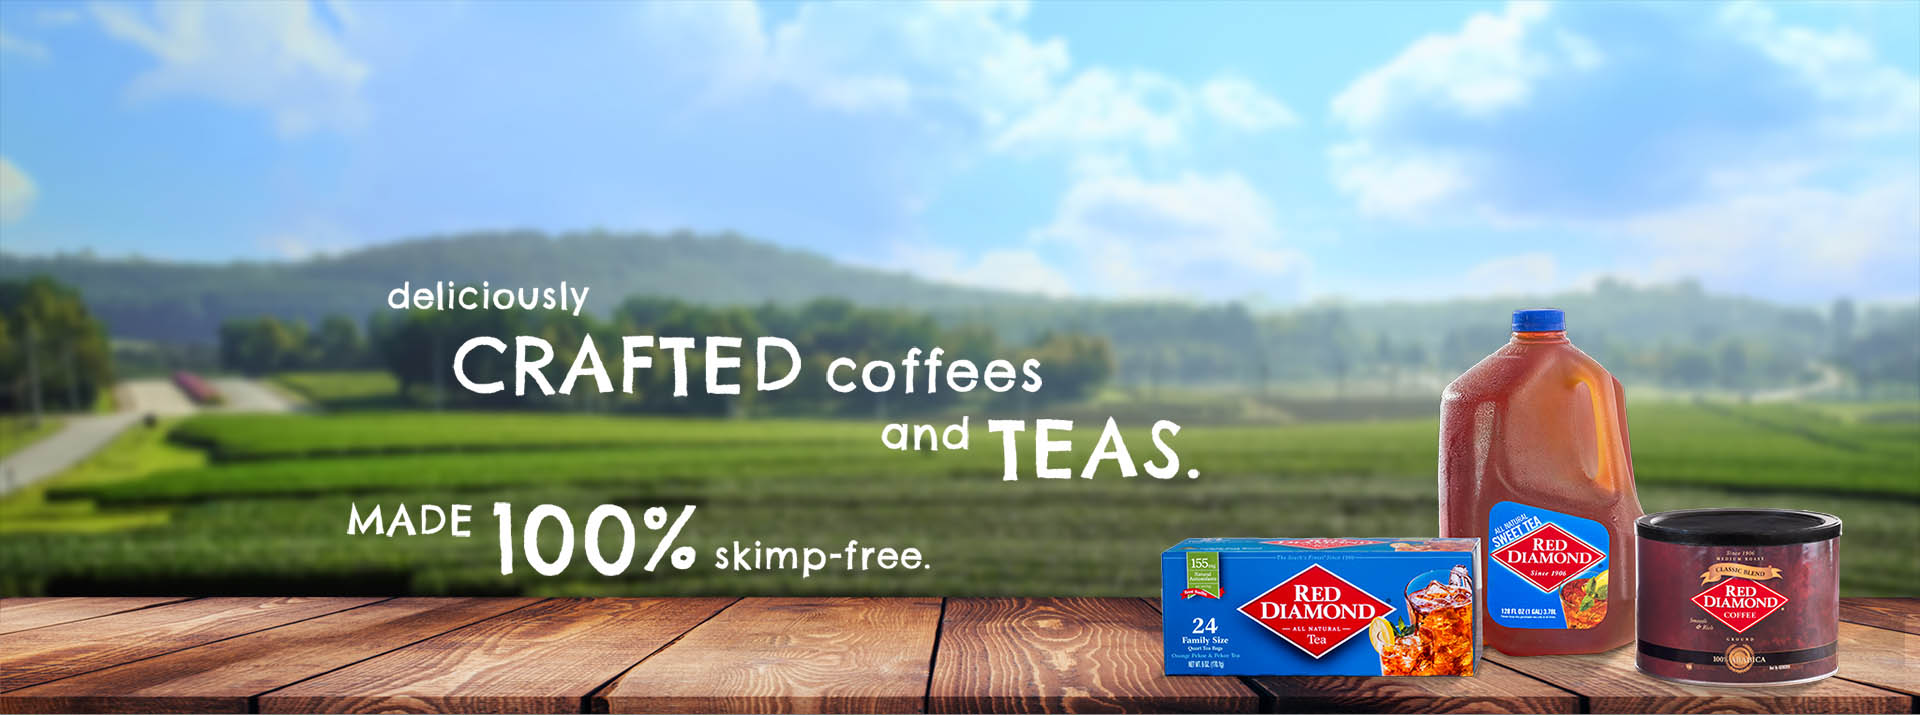 Deliciously crafted coffees and teas. Made 100% skimp-free.